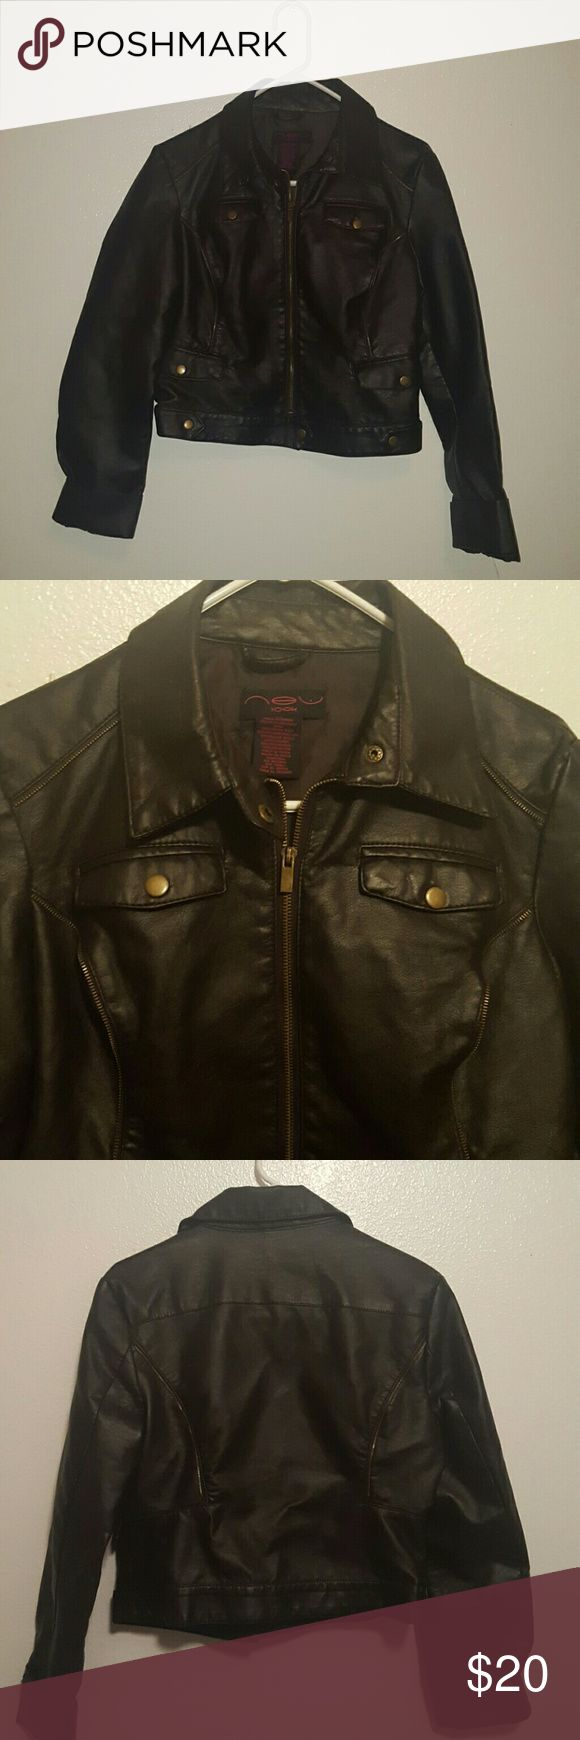 New Look Leather Jacket Size L New Look Leather Jacket, size Large, dark brown leather. Zips up and has zipper detailing and pockets. Make me an offer! New Look Jackets & Coats